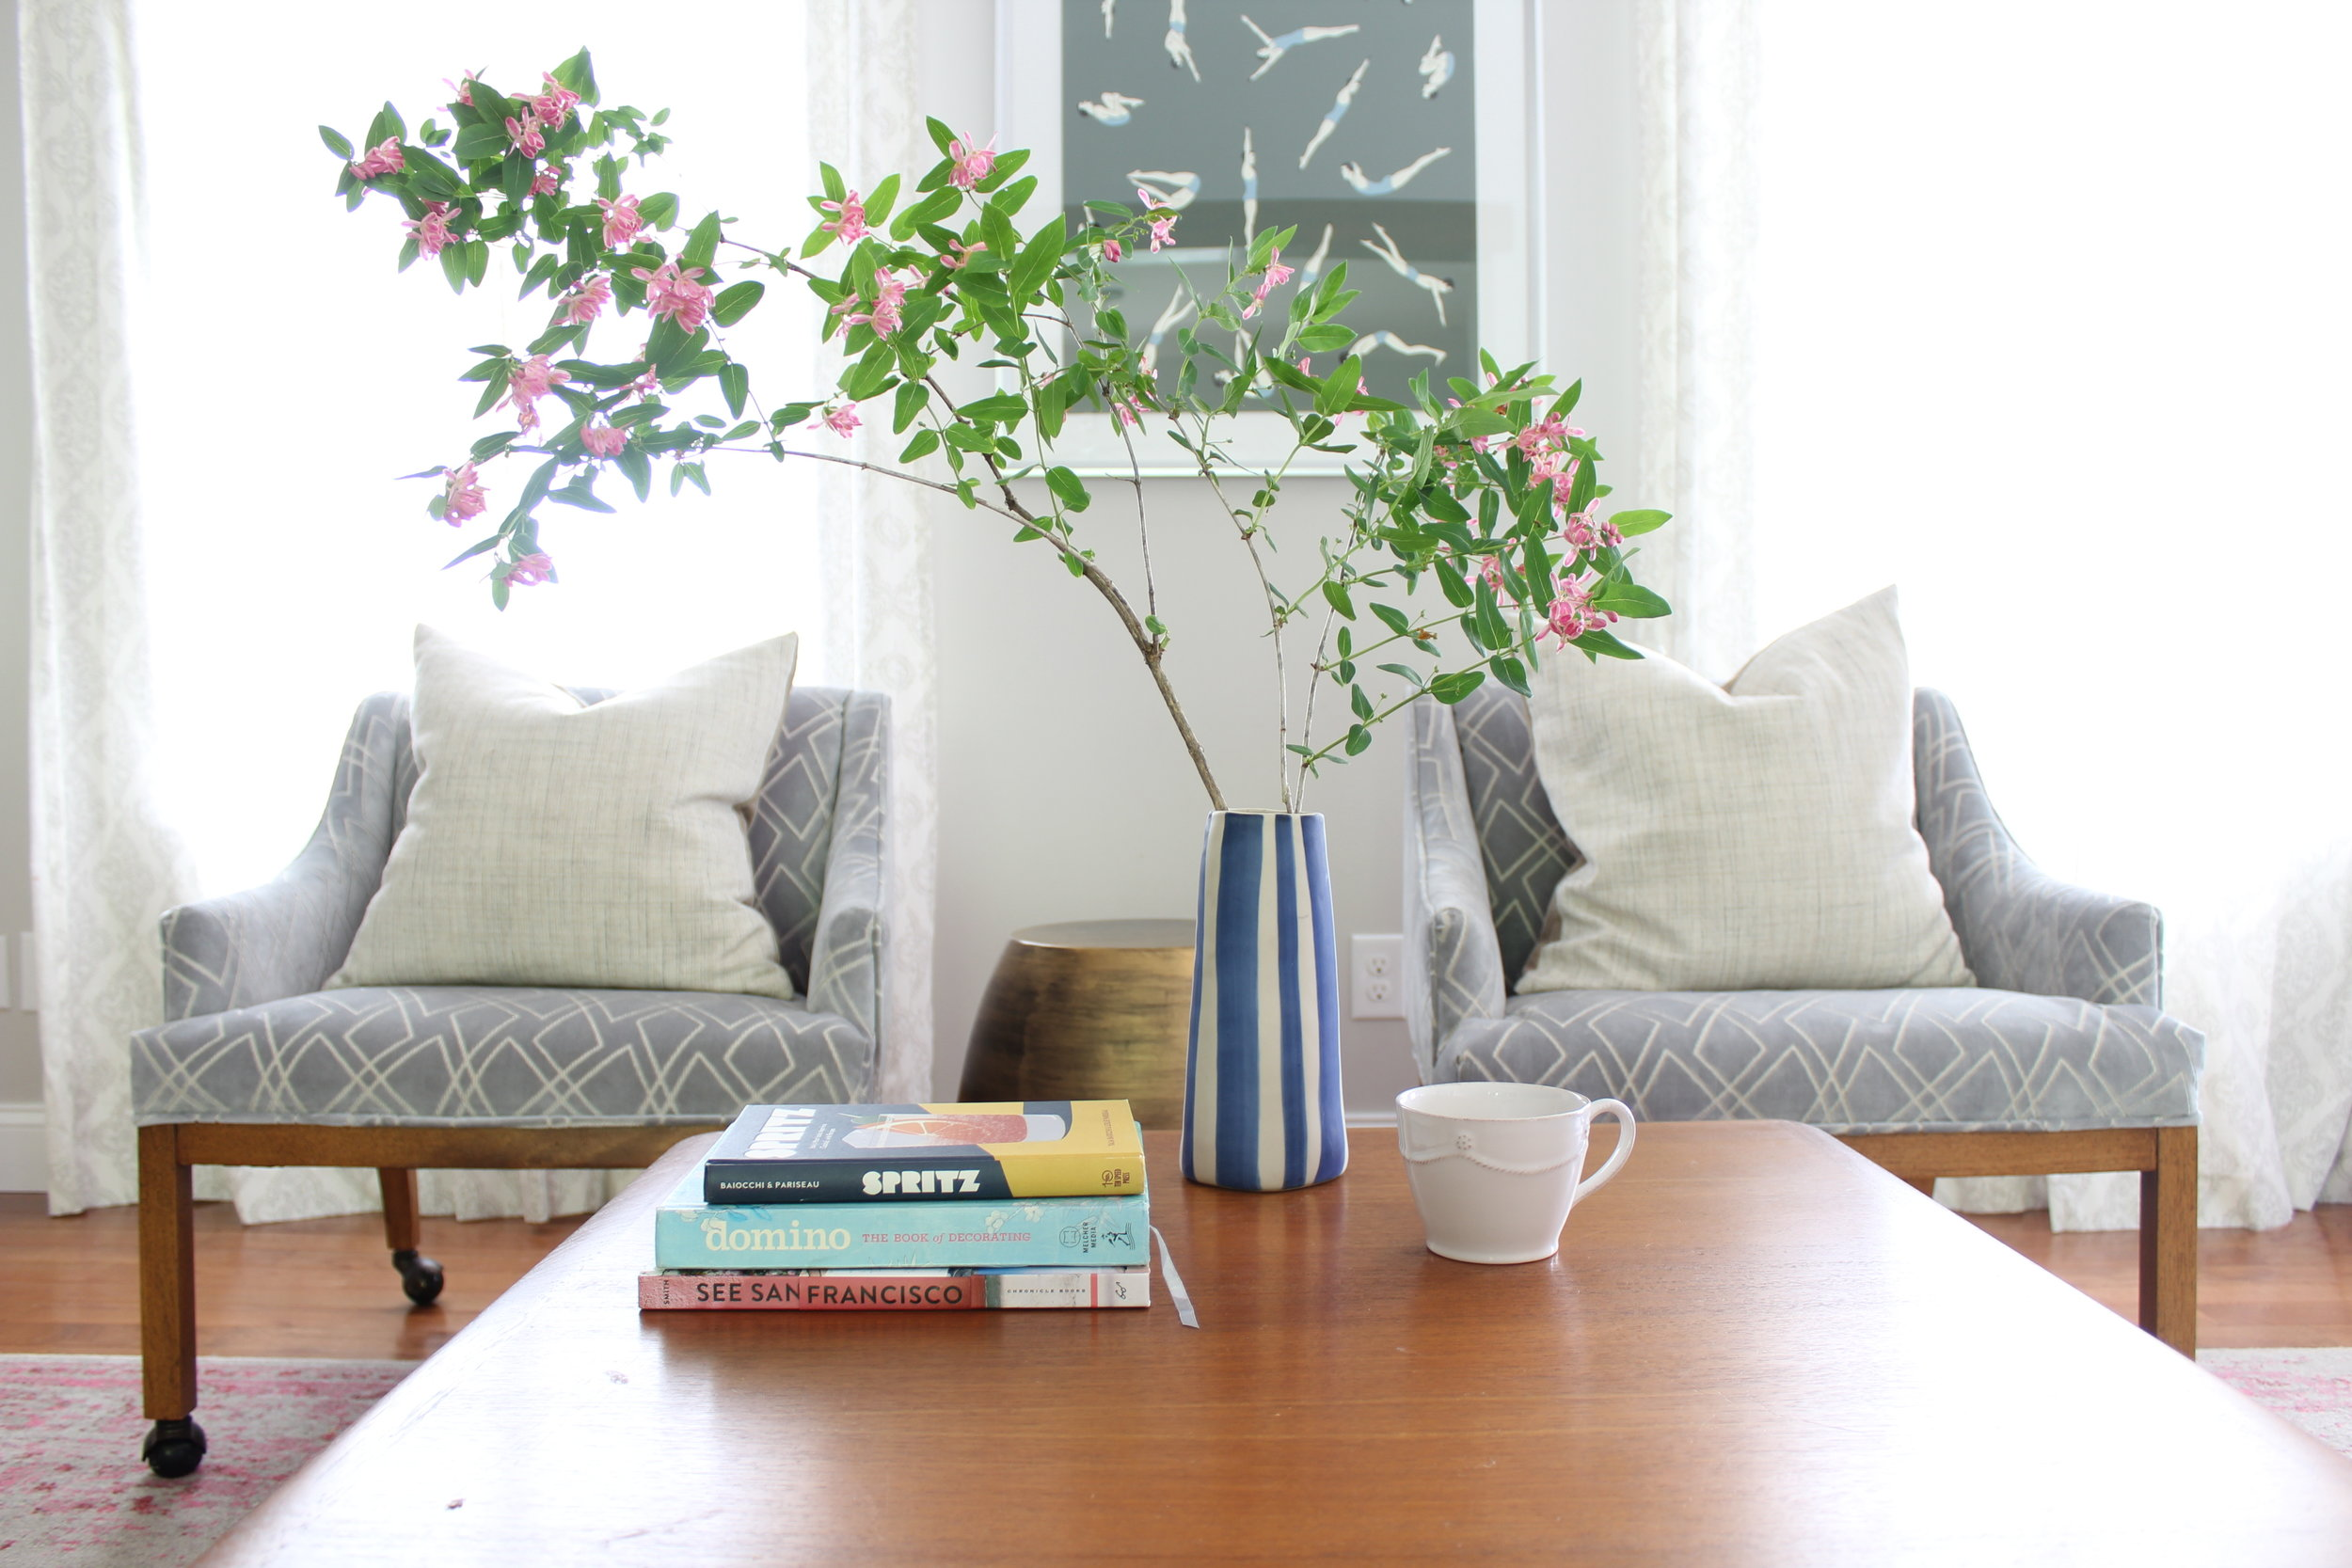 Stem arrangement in front of matching wood chairs with pillows